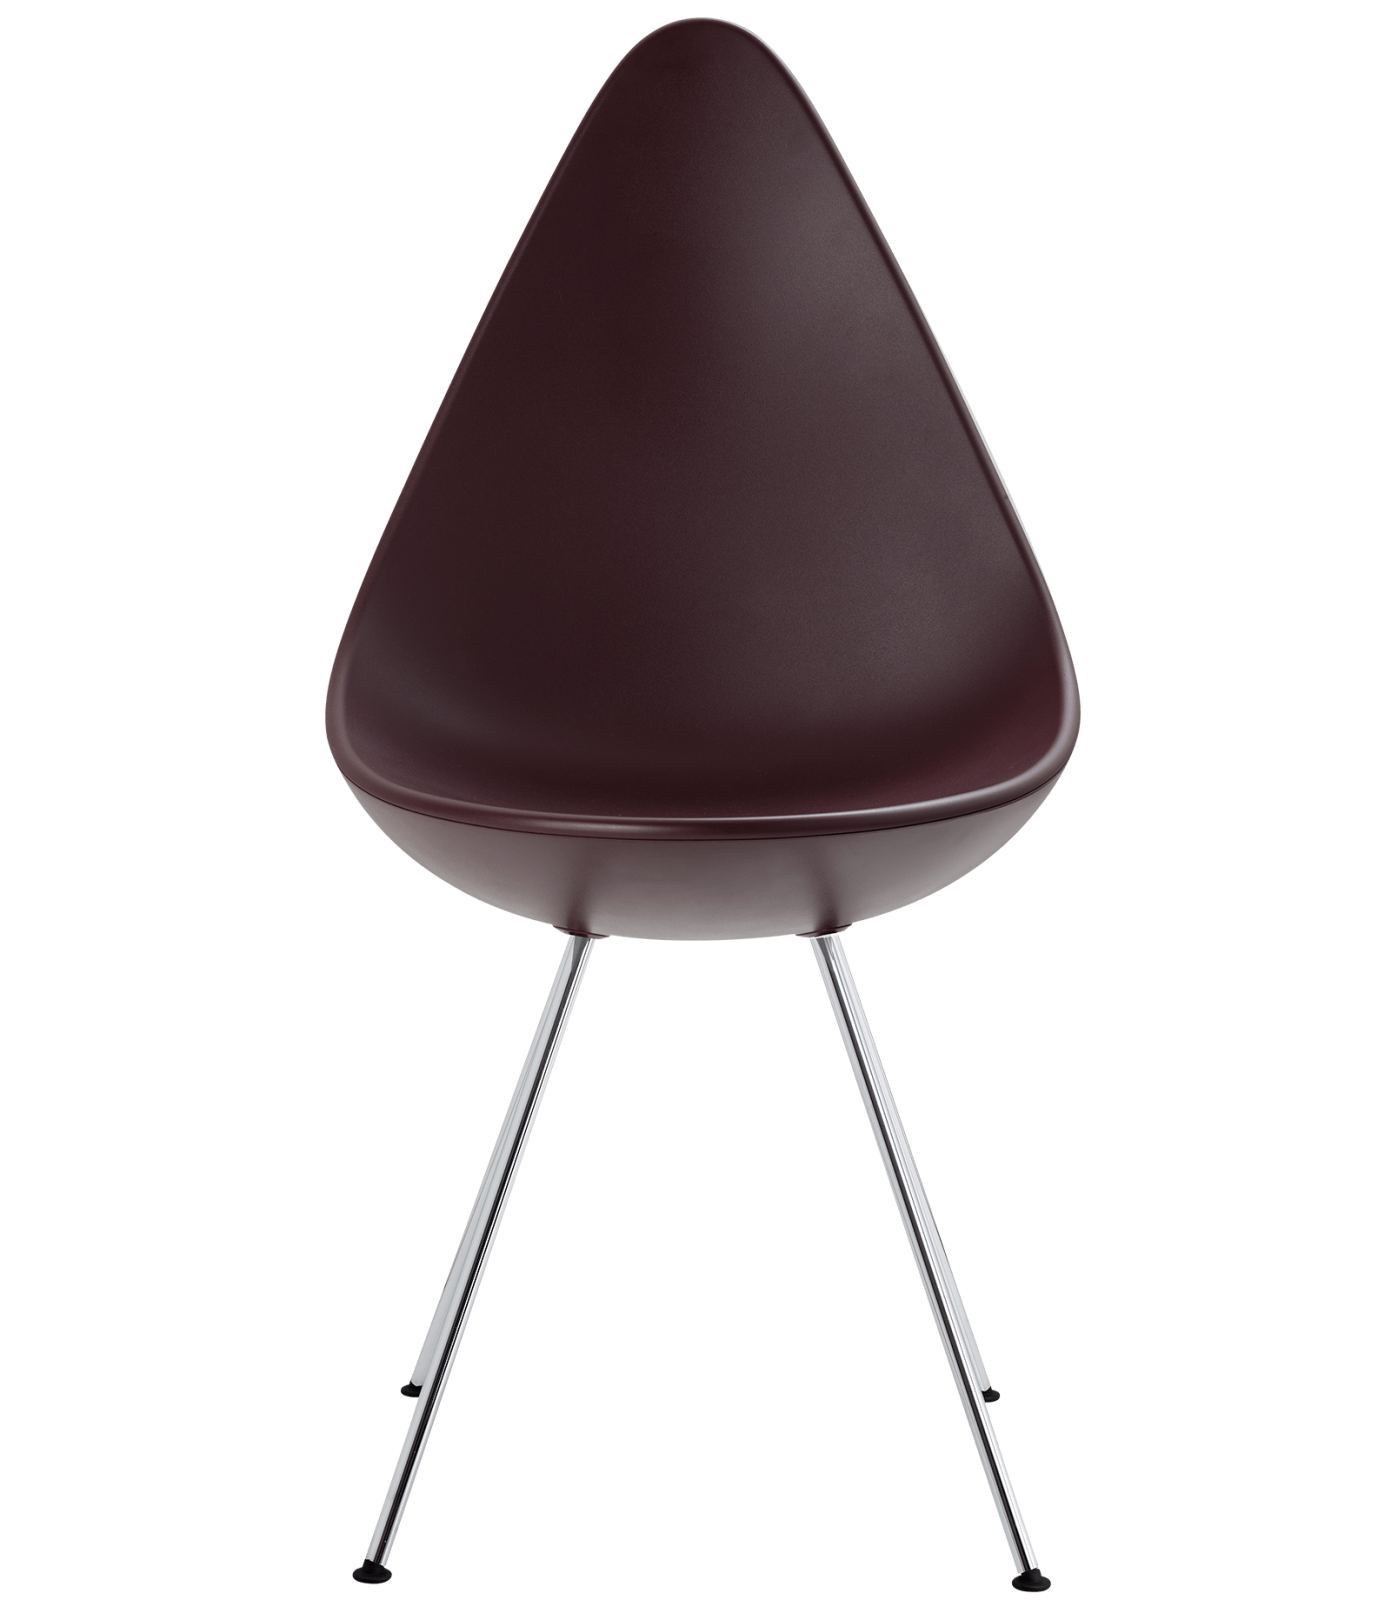 Drop Plastic Chair Plastic Burgundy Red, Chrome